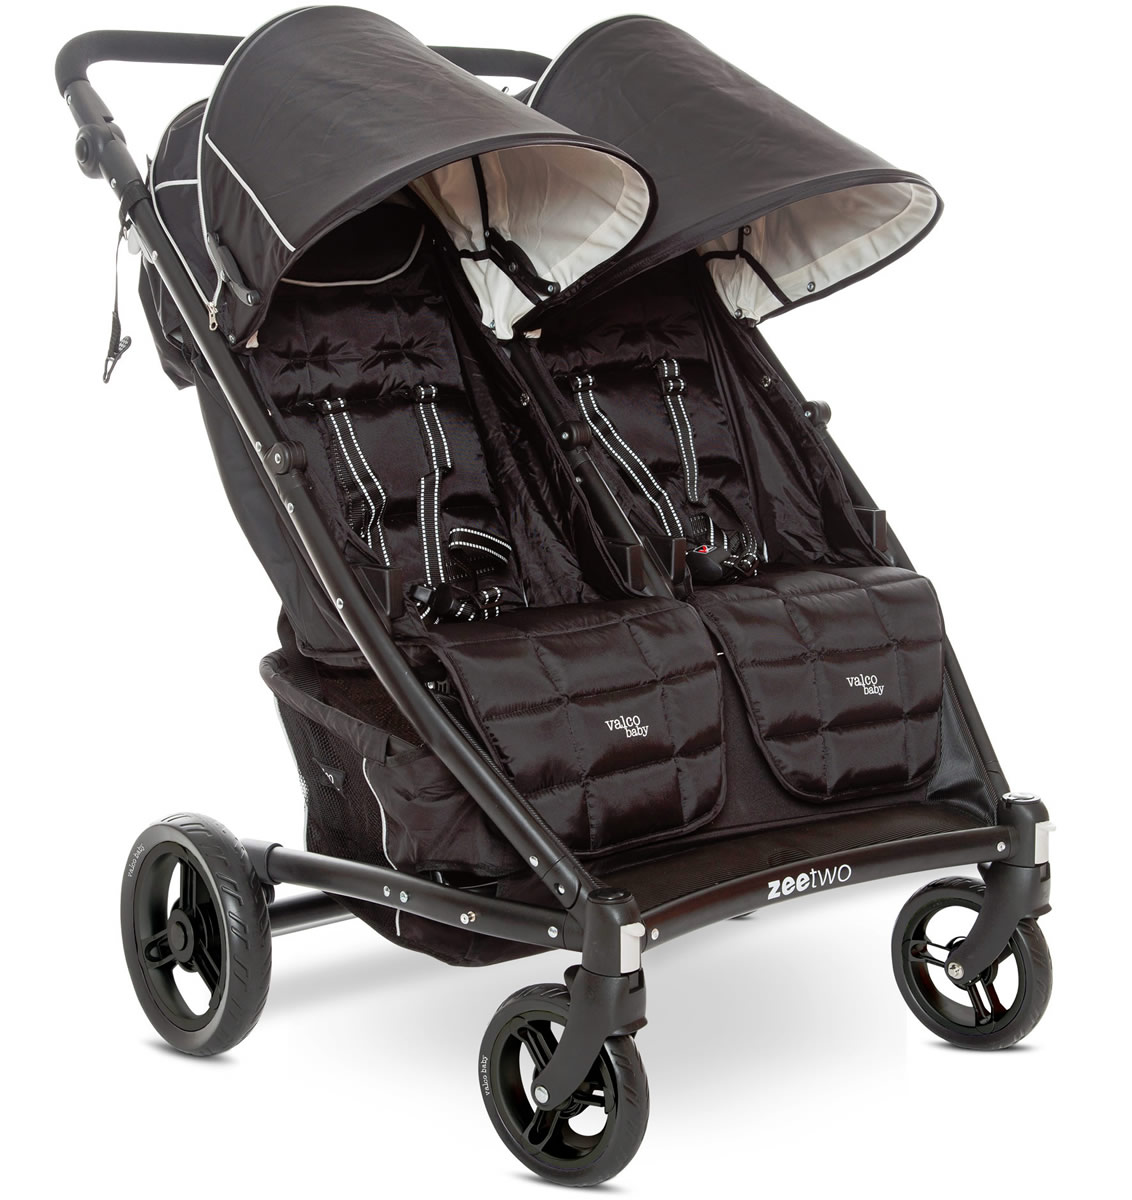 Breathtaking Market Is Offered A Stroller Frame To Which Additionalseats Likewise Two Can Be Here Advantage Is That Infants Canbe Brought Thinking About Advantages Strollers Disadvantages baby Combi Double Stroller